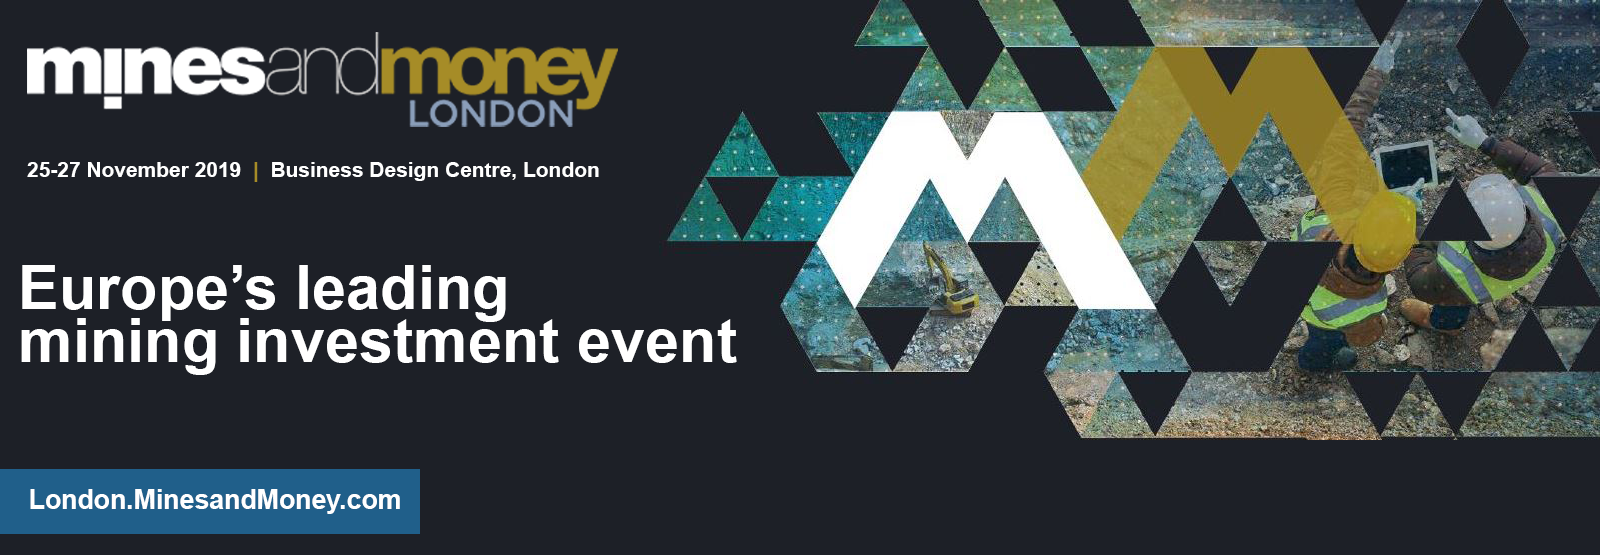 https://london.minesandmoney.com